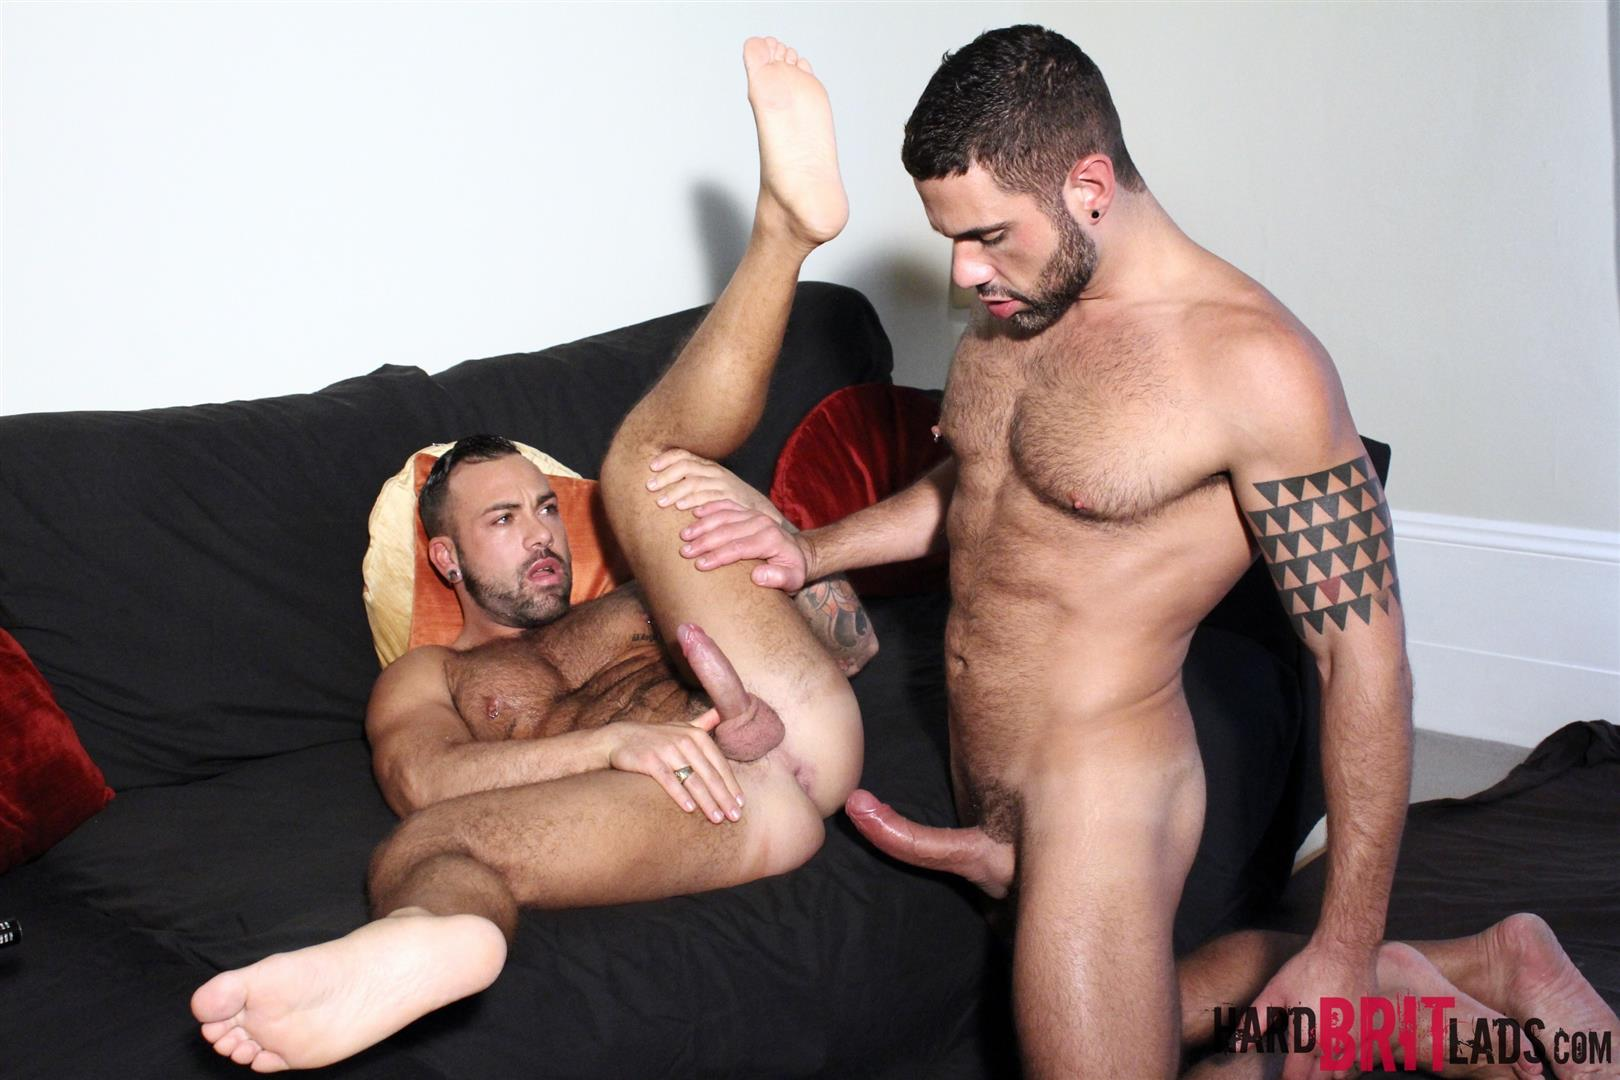 Hard Brit Lads Sergi Rodriguez and Letterio Amadeo Big Uncut Cock Fucking Amateur Gay Porn 13 Hairy British Muscle Hunks Fucking With Their Big Uncut Cocks